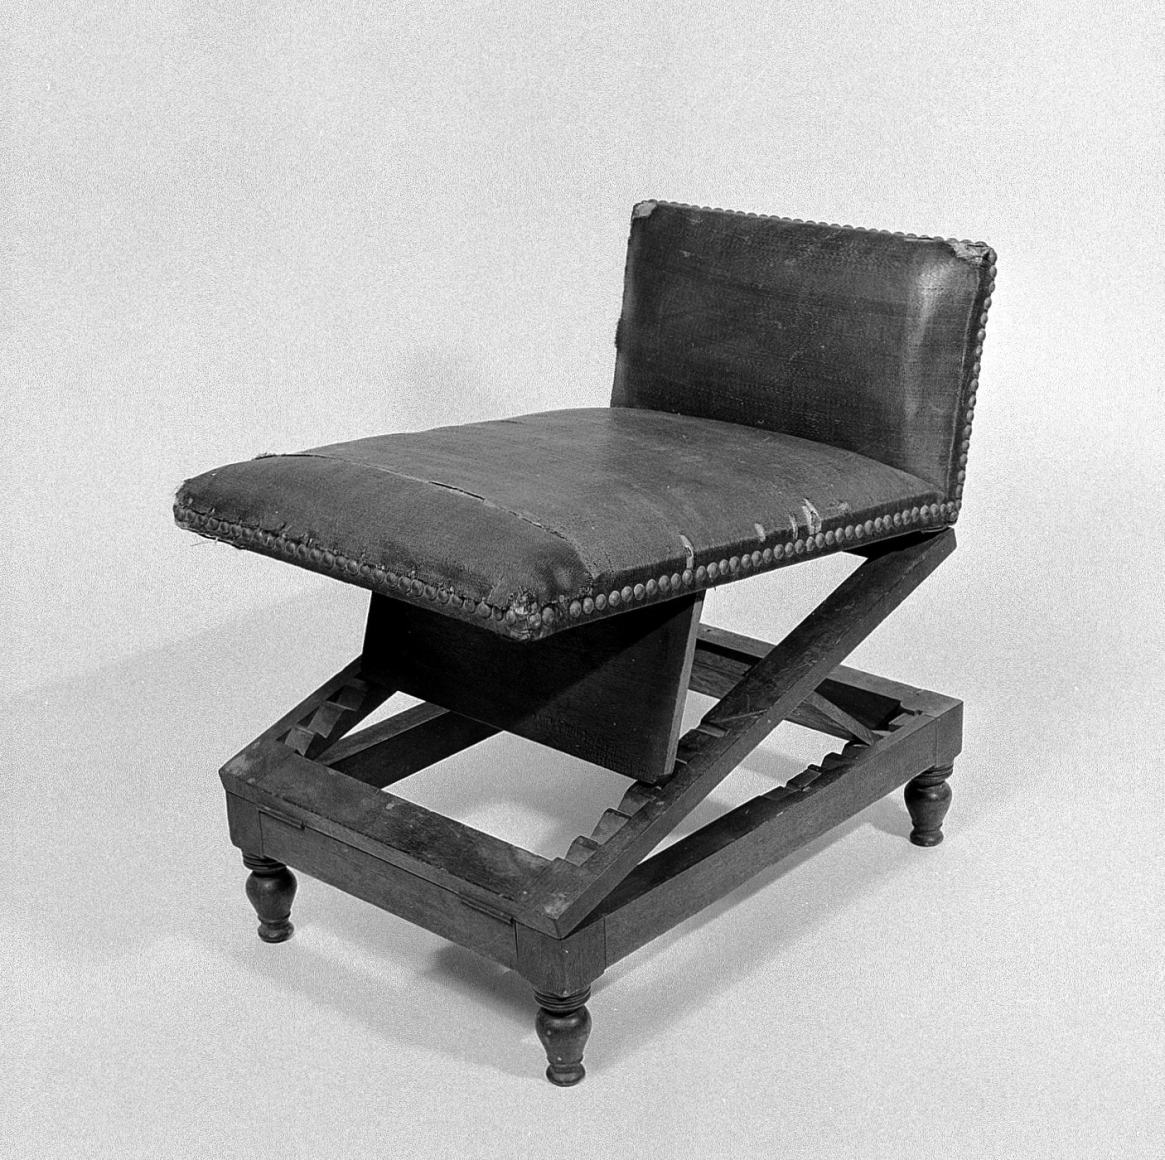 Gout Stool, Attributed to George Hepplewhite, undated, Wellcome Collection